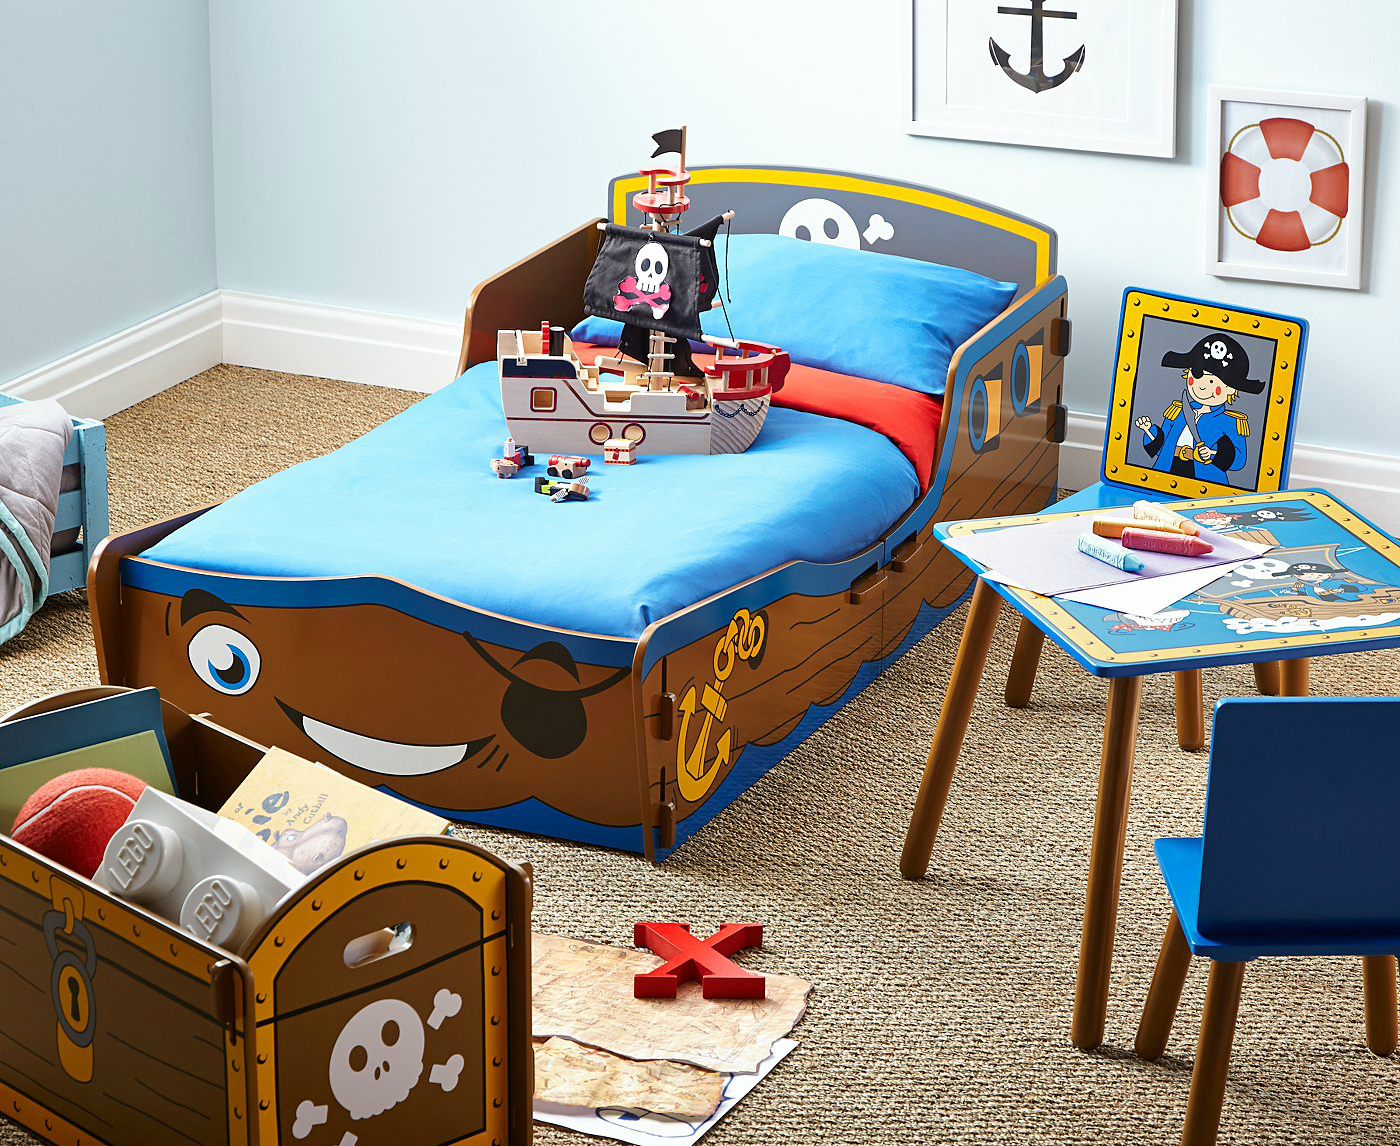 Pirate Themed Bedroom Ideas for Toddlers | Pirate themed bedrooms ...